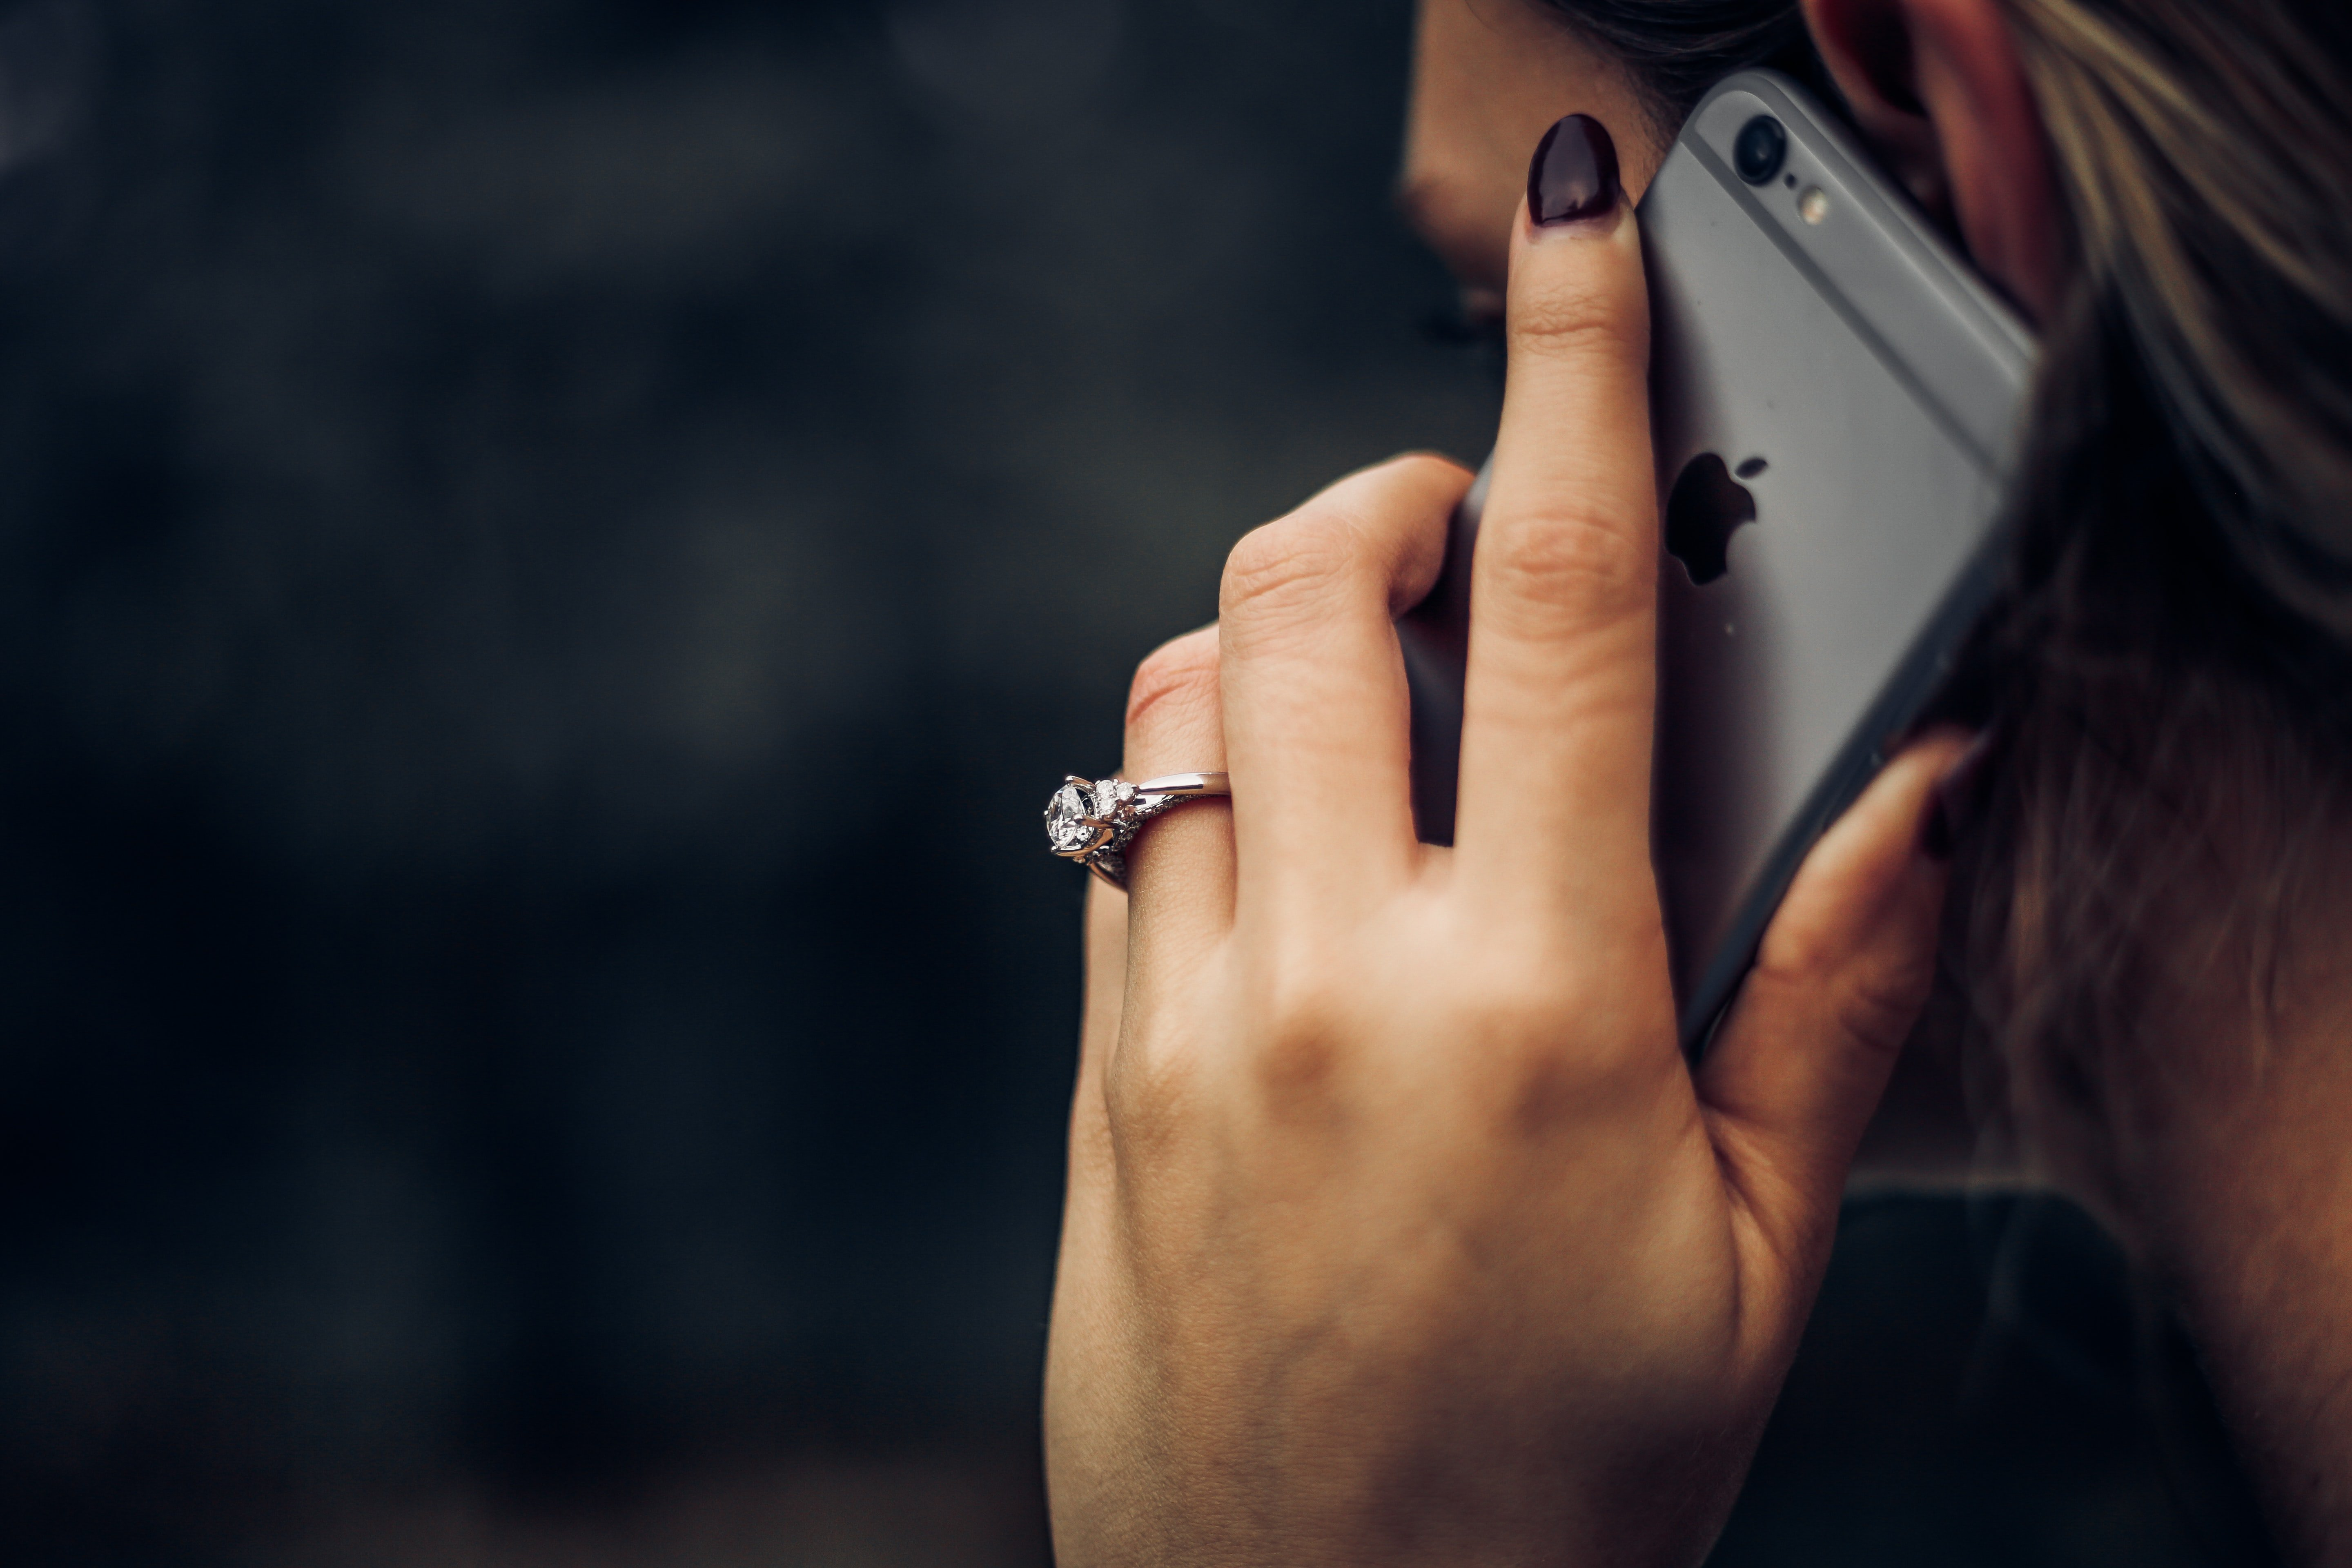 Woman talking on the phone | Source: Unsplash / Taylor Grote